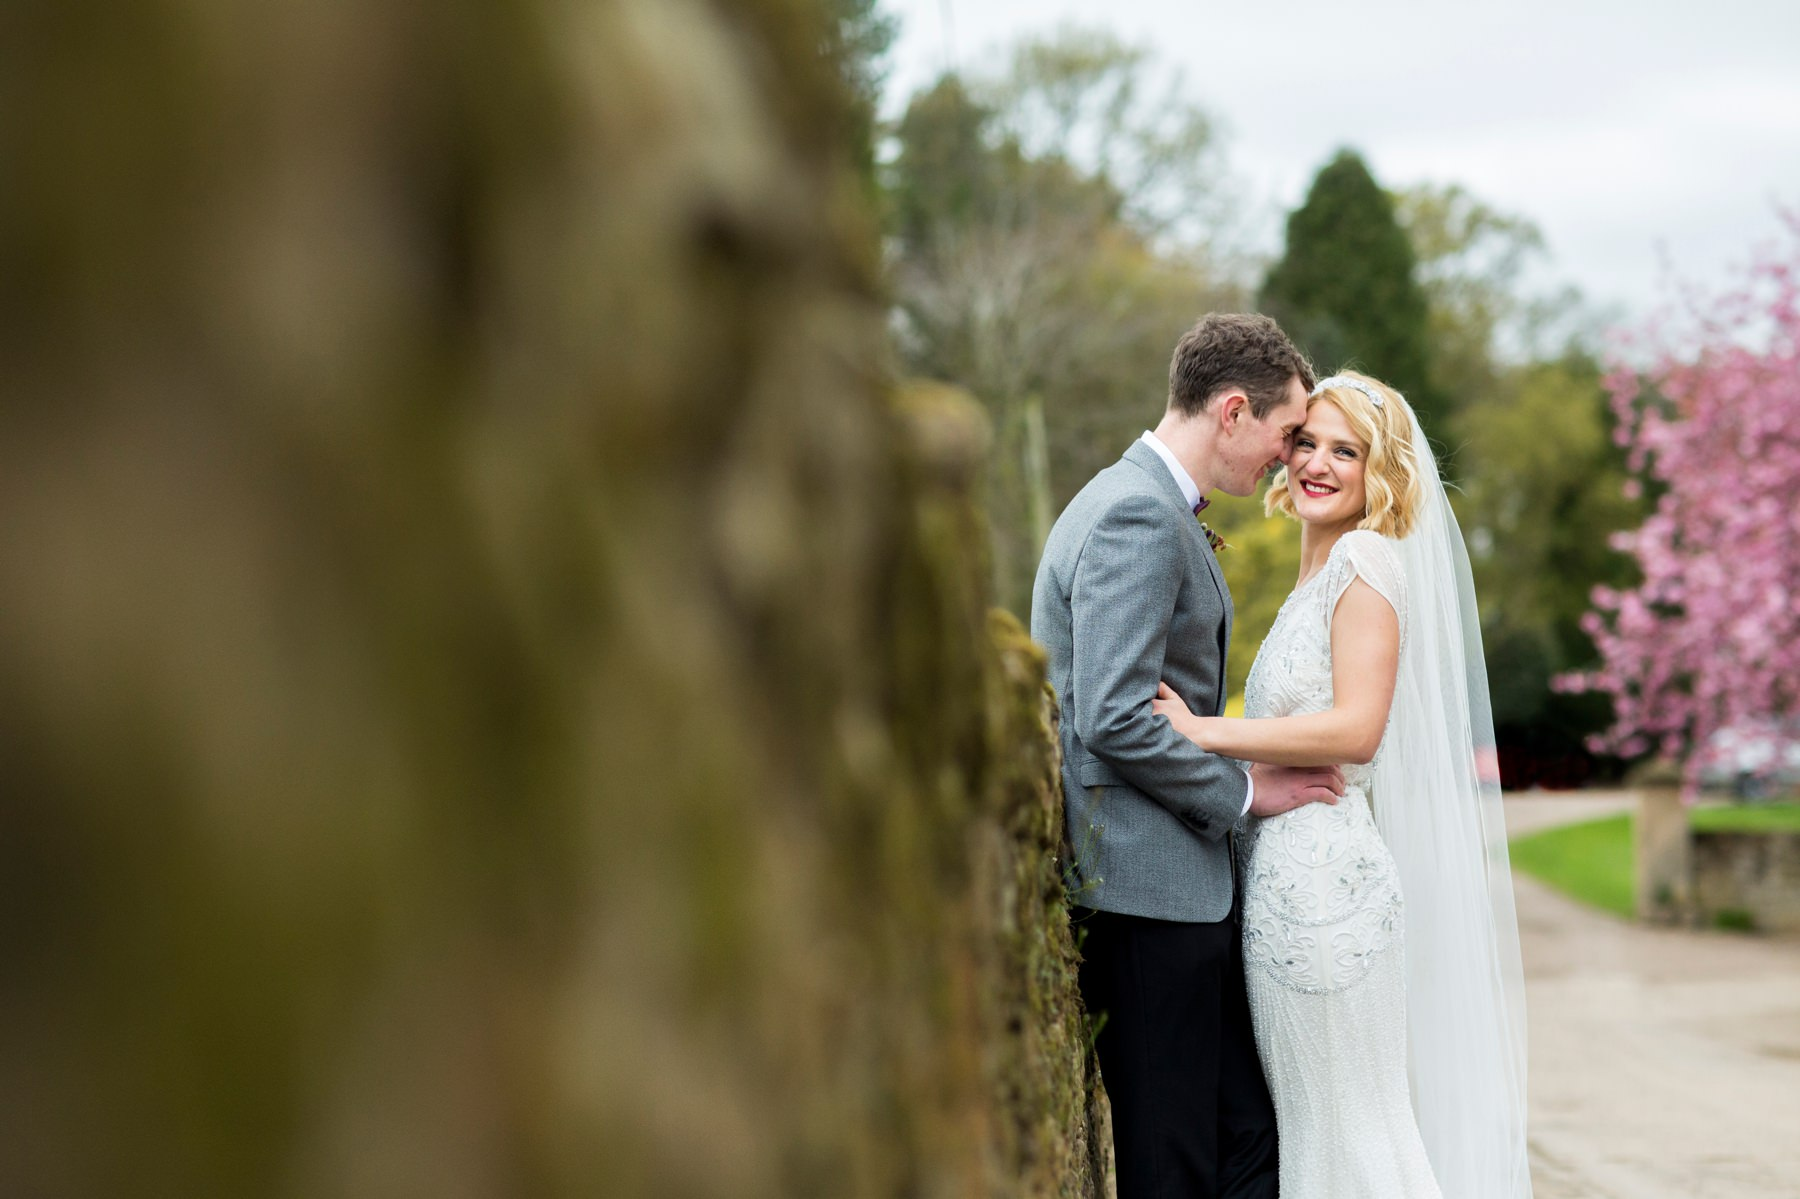 Doxford Barns Wedding Photography